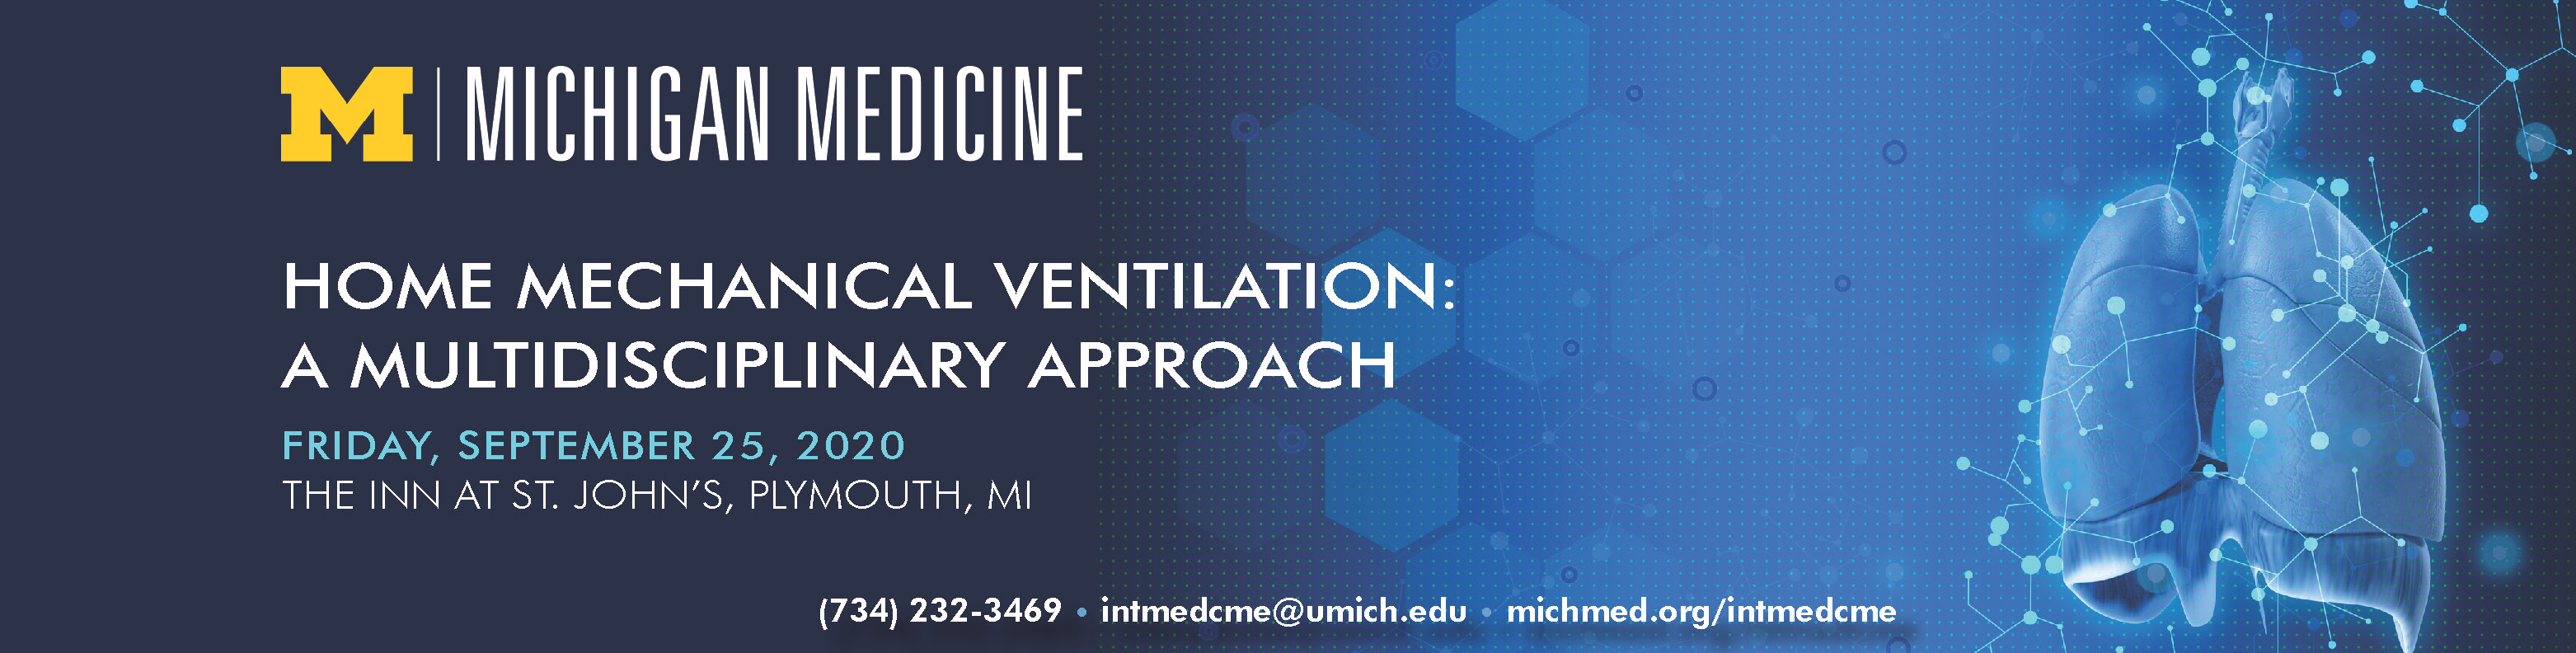 Home Mechanical Ventilation: A Multidisciplinary Approach